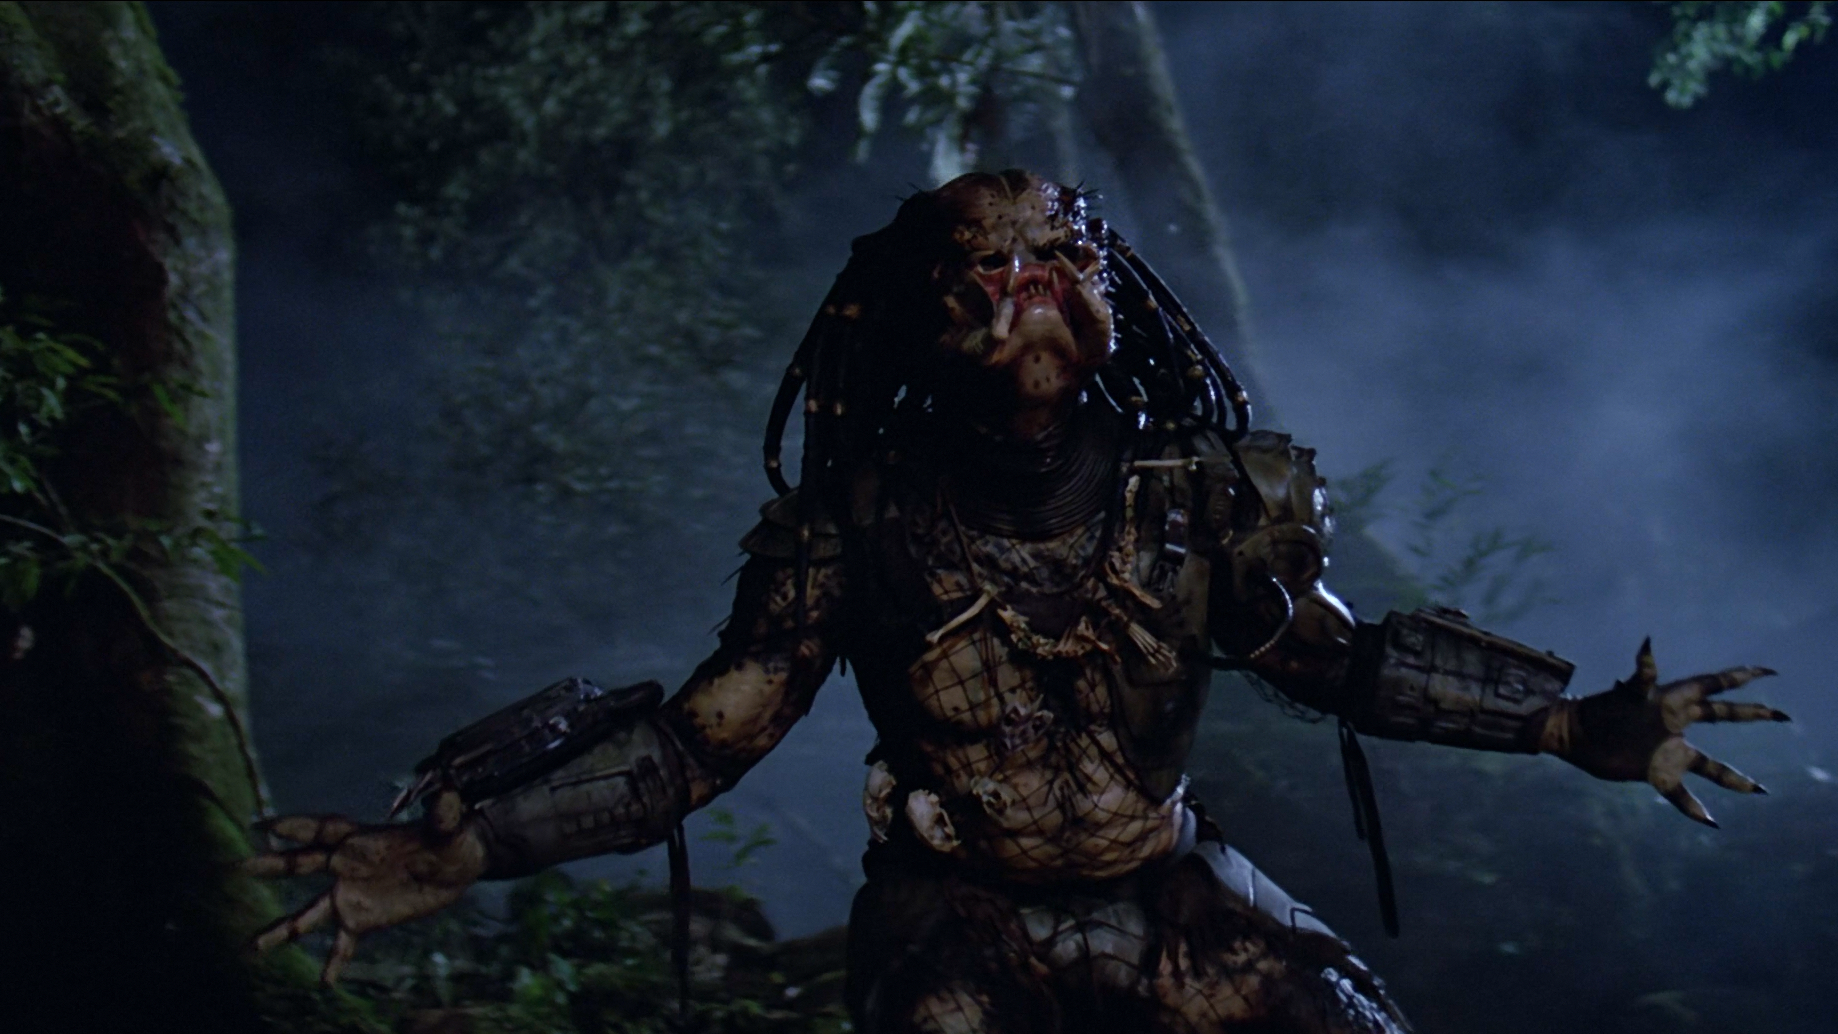 New 4K Ultra HD Releases of All Standalone 'Predator' Films Coming